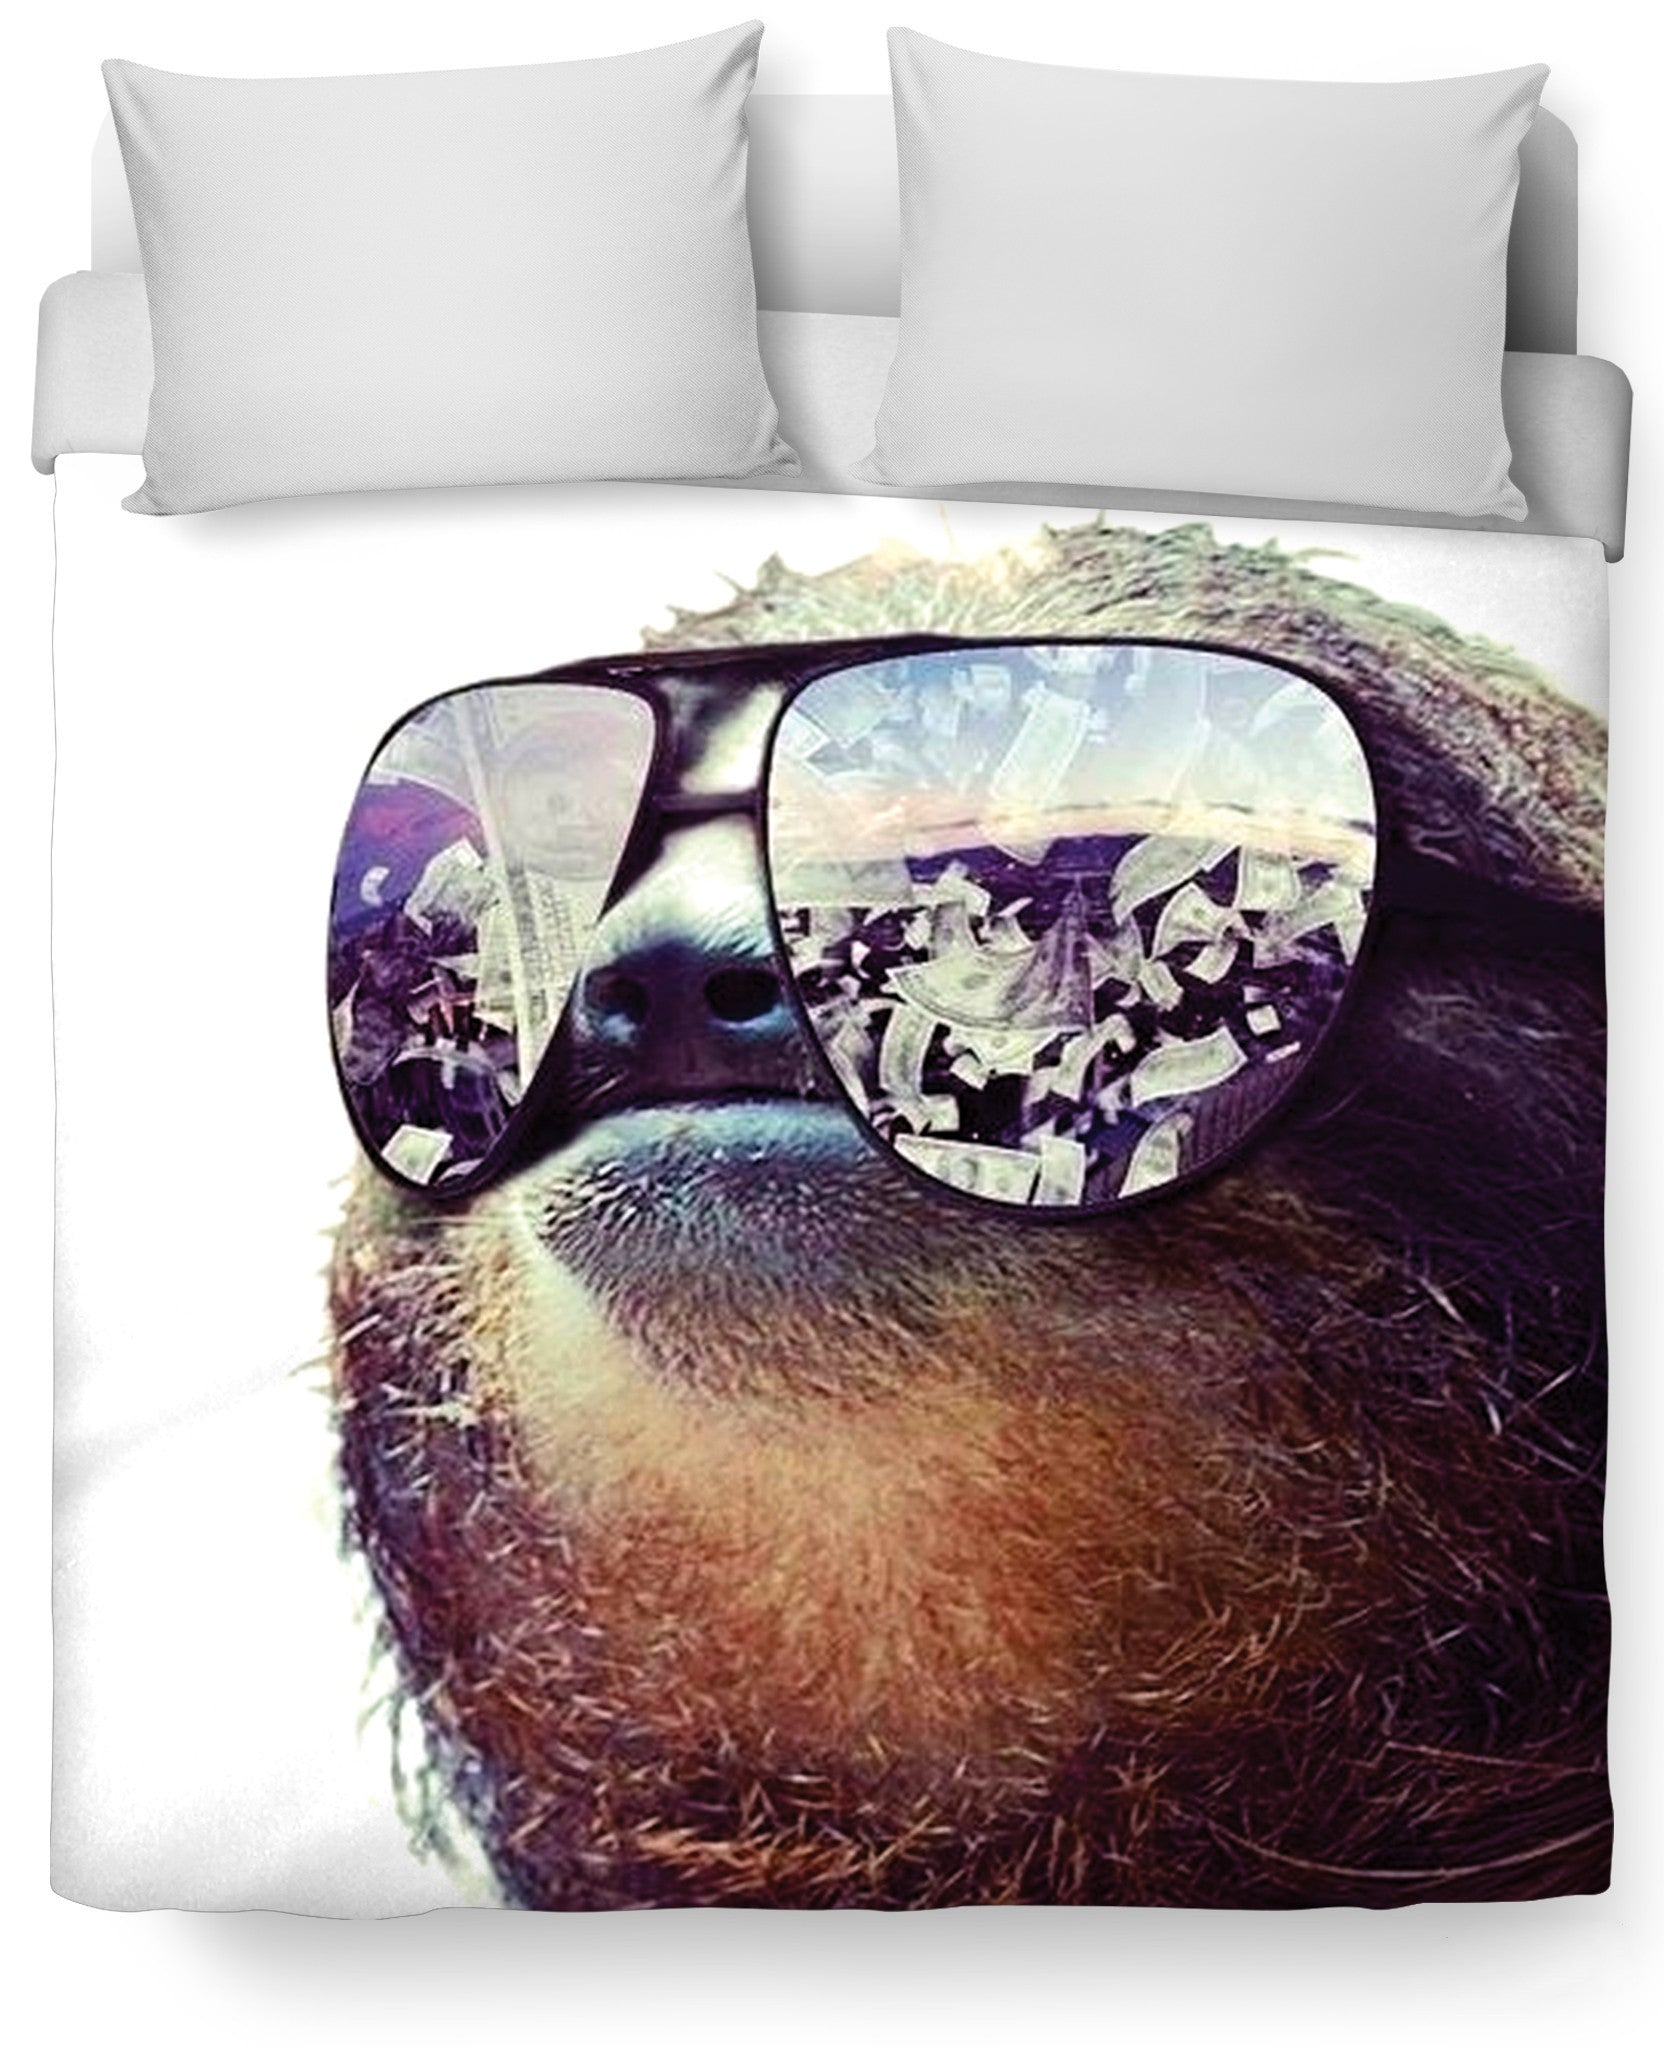 Sloth Swag Duvet Cover